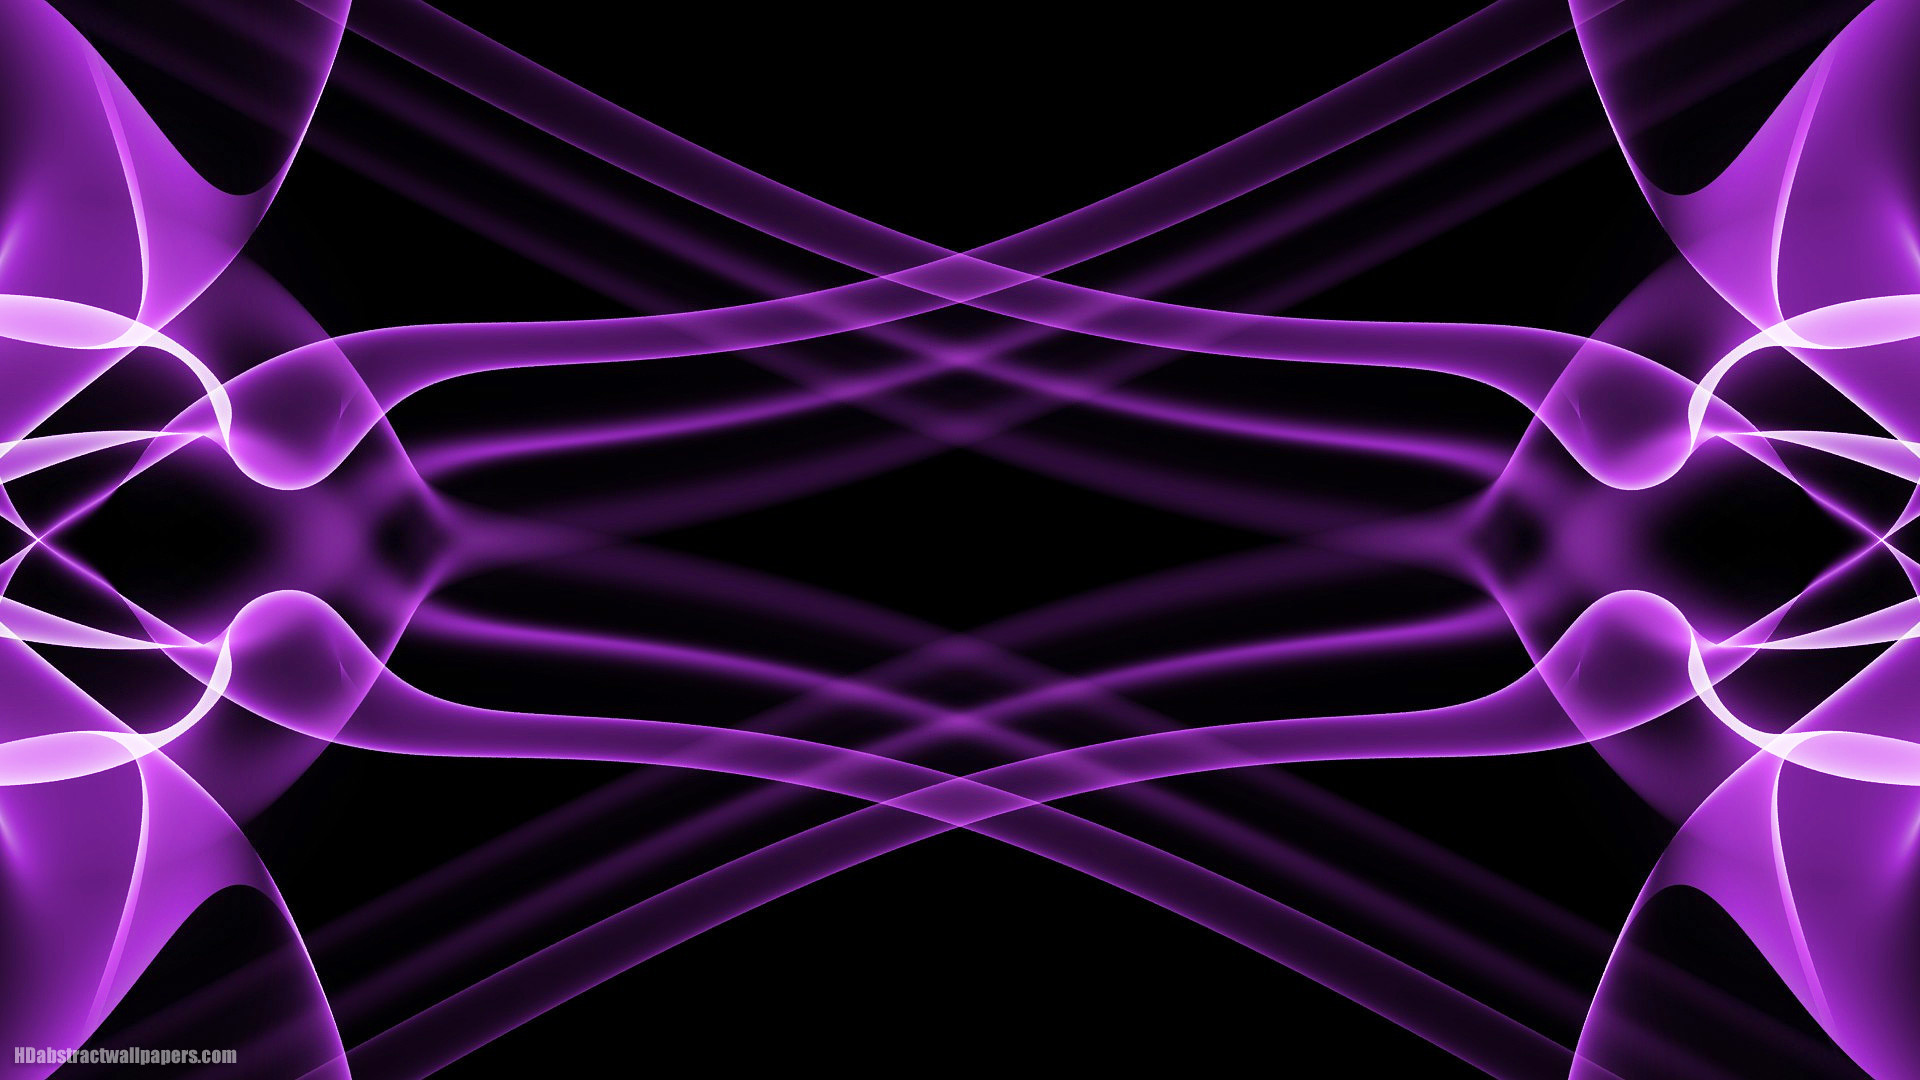 Abstract purple wallpaper with a black background. In HD quality resolution  1920×1080.